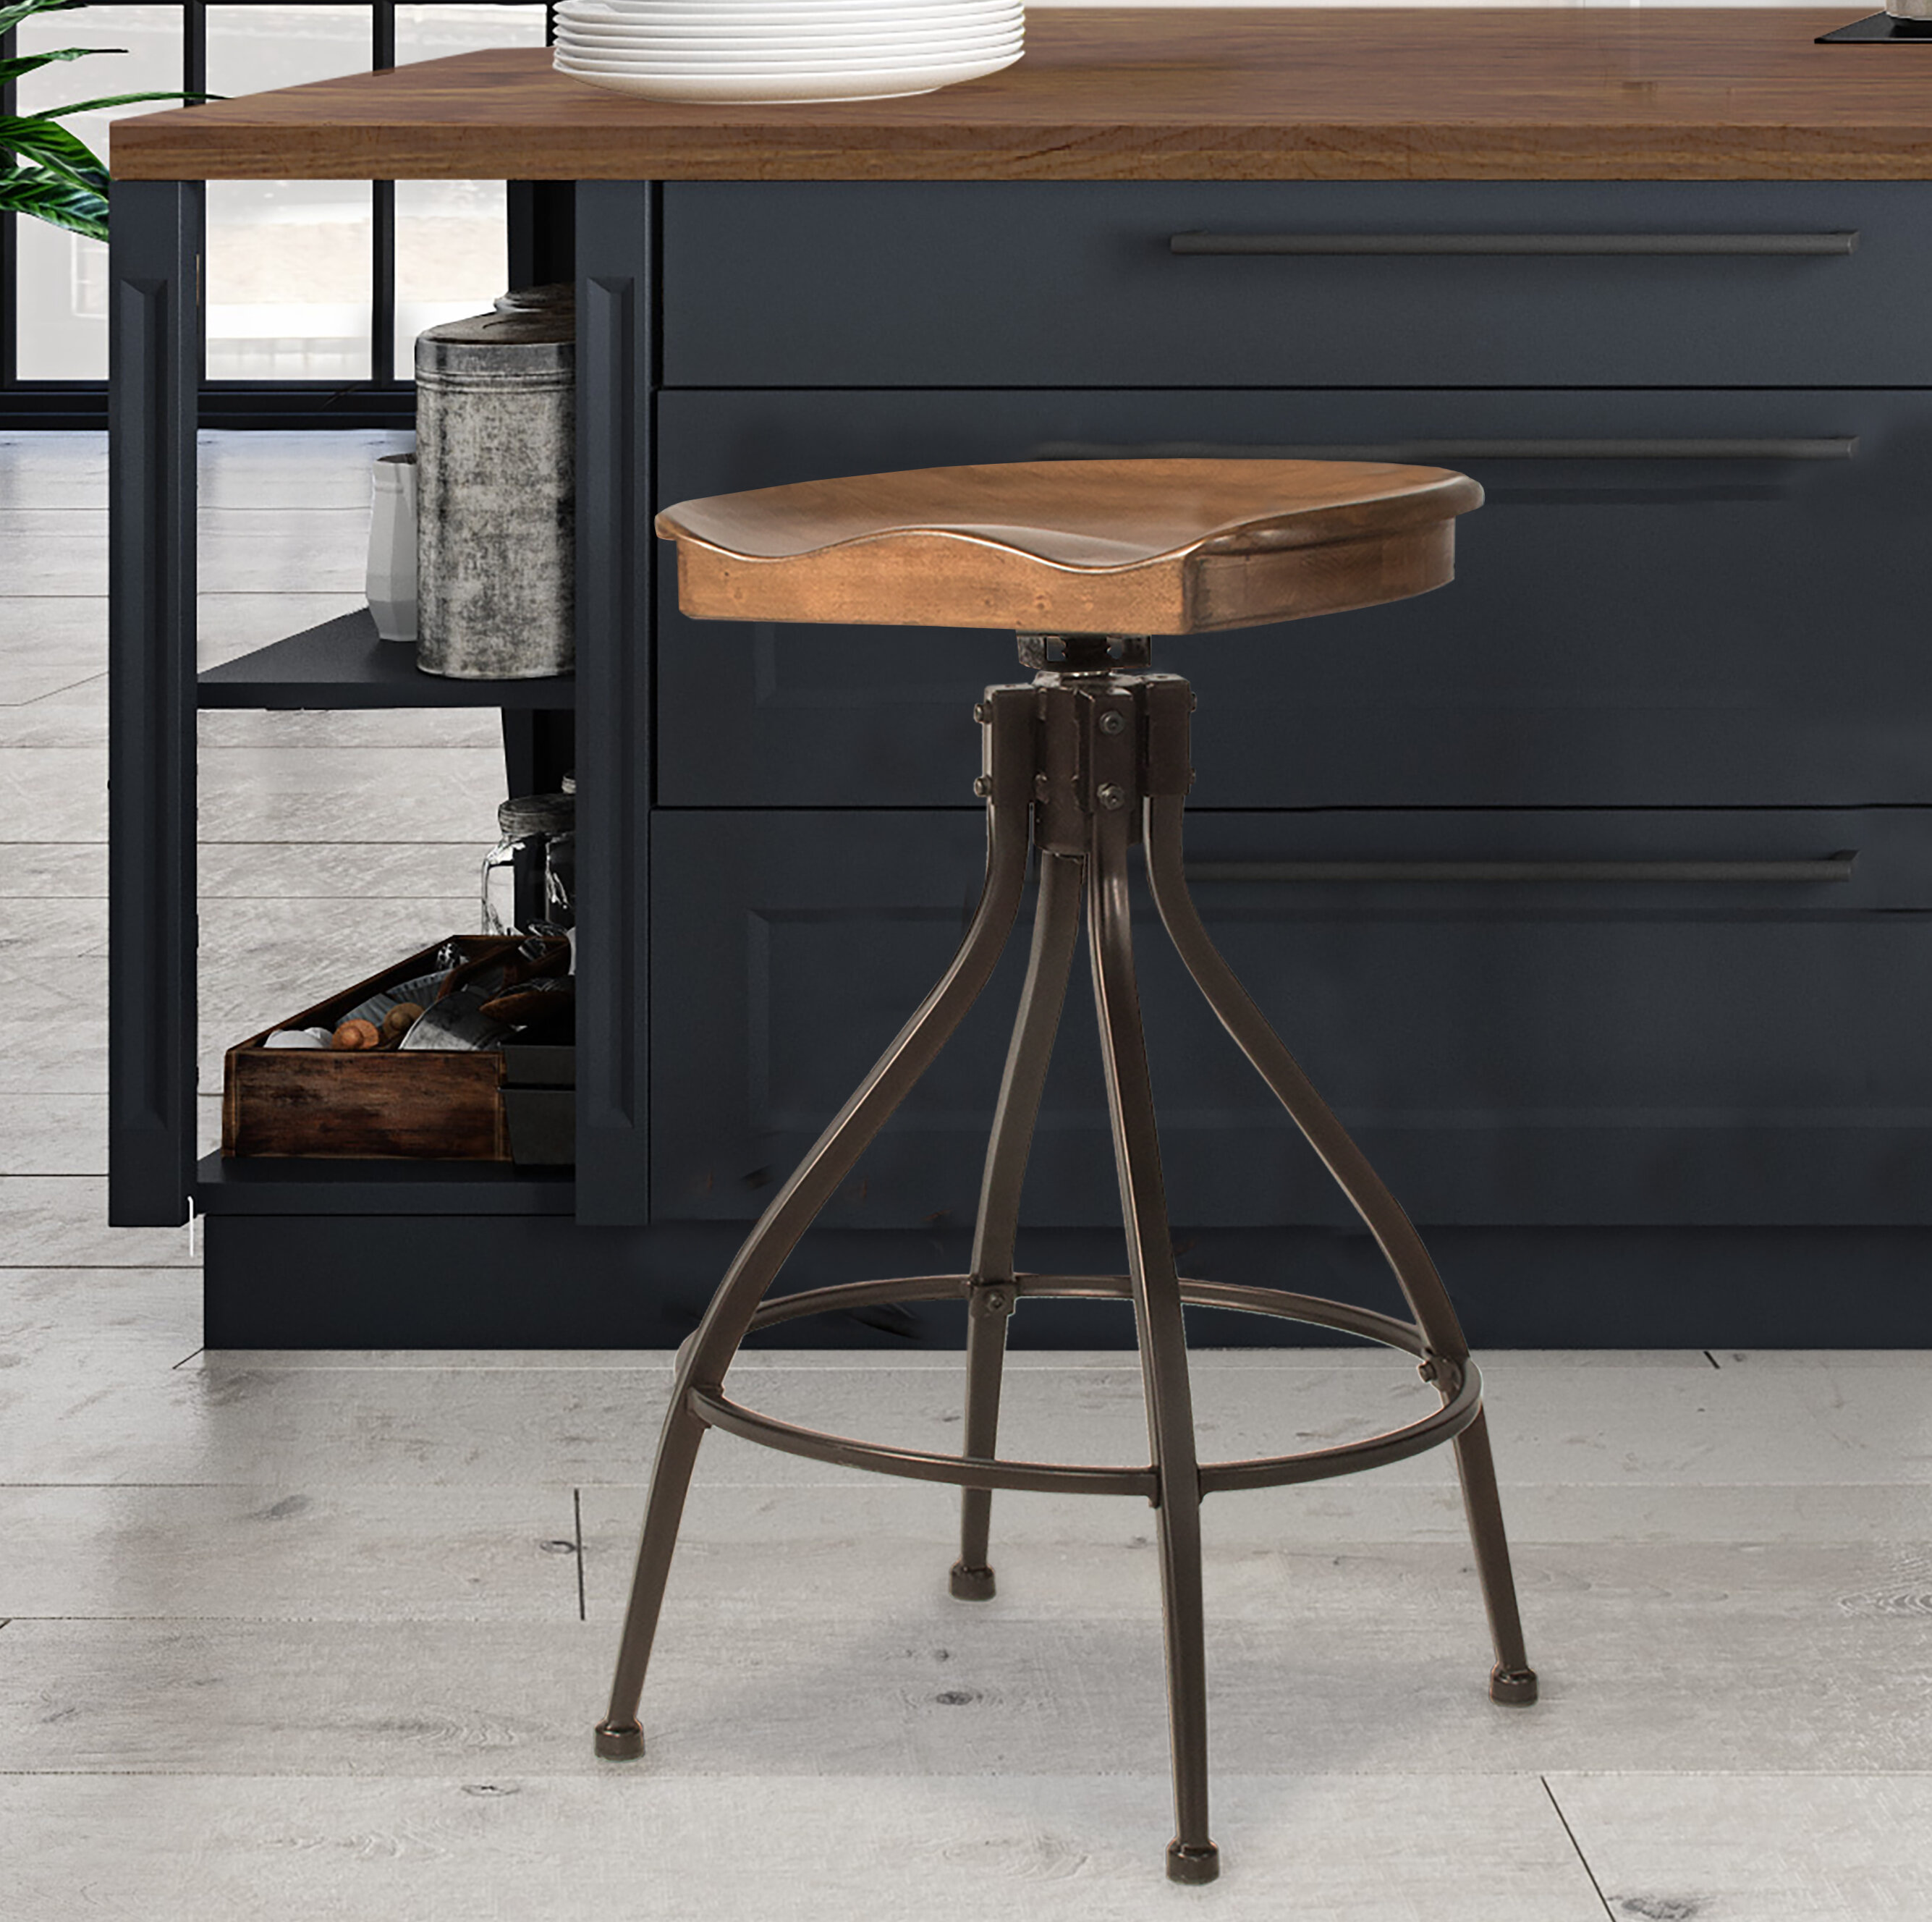 Swell Mcmahan Worland Adjustable Height Bar Stool Unemploymentrelief Wooden Chair Designs For Living Room Unemploymentrelieforg